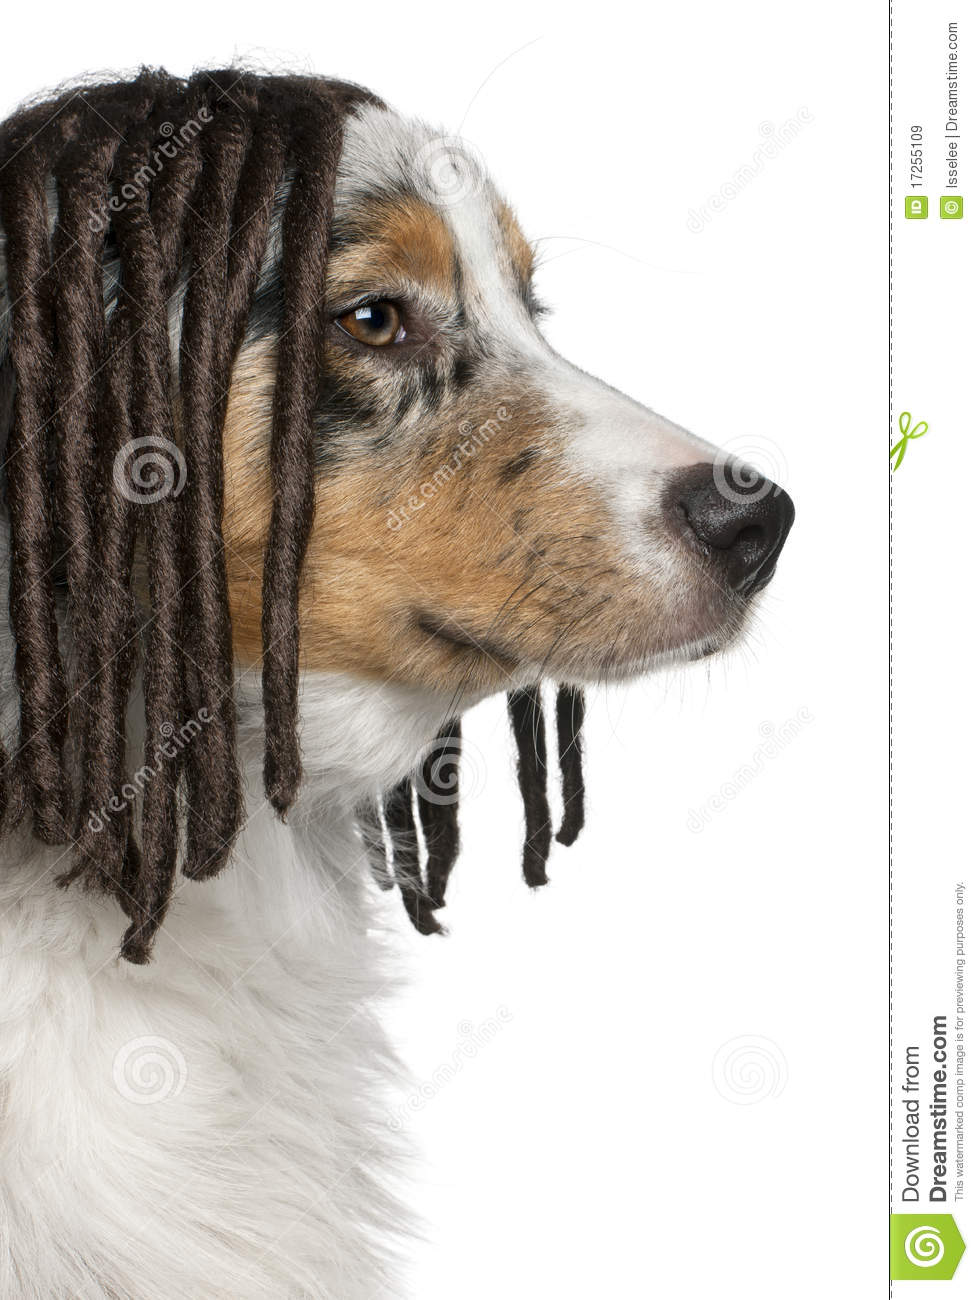 Royalty Free Stock Images: Australian Shepherd puppy wearing a ...